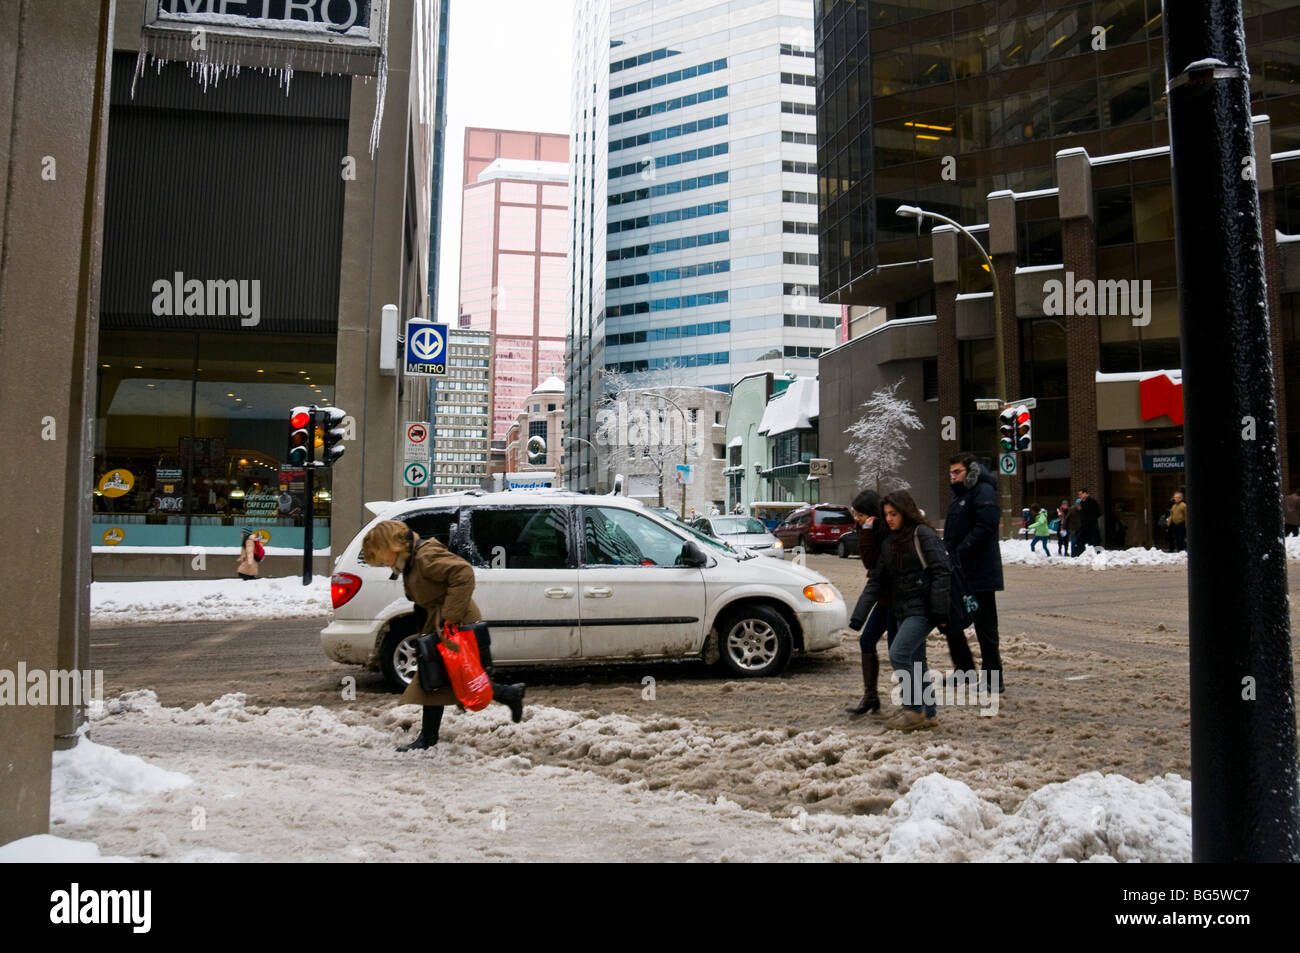 People battling with the mix of slush and snow in downtown Montreal - Stock Image